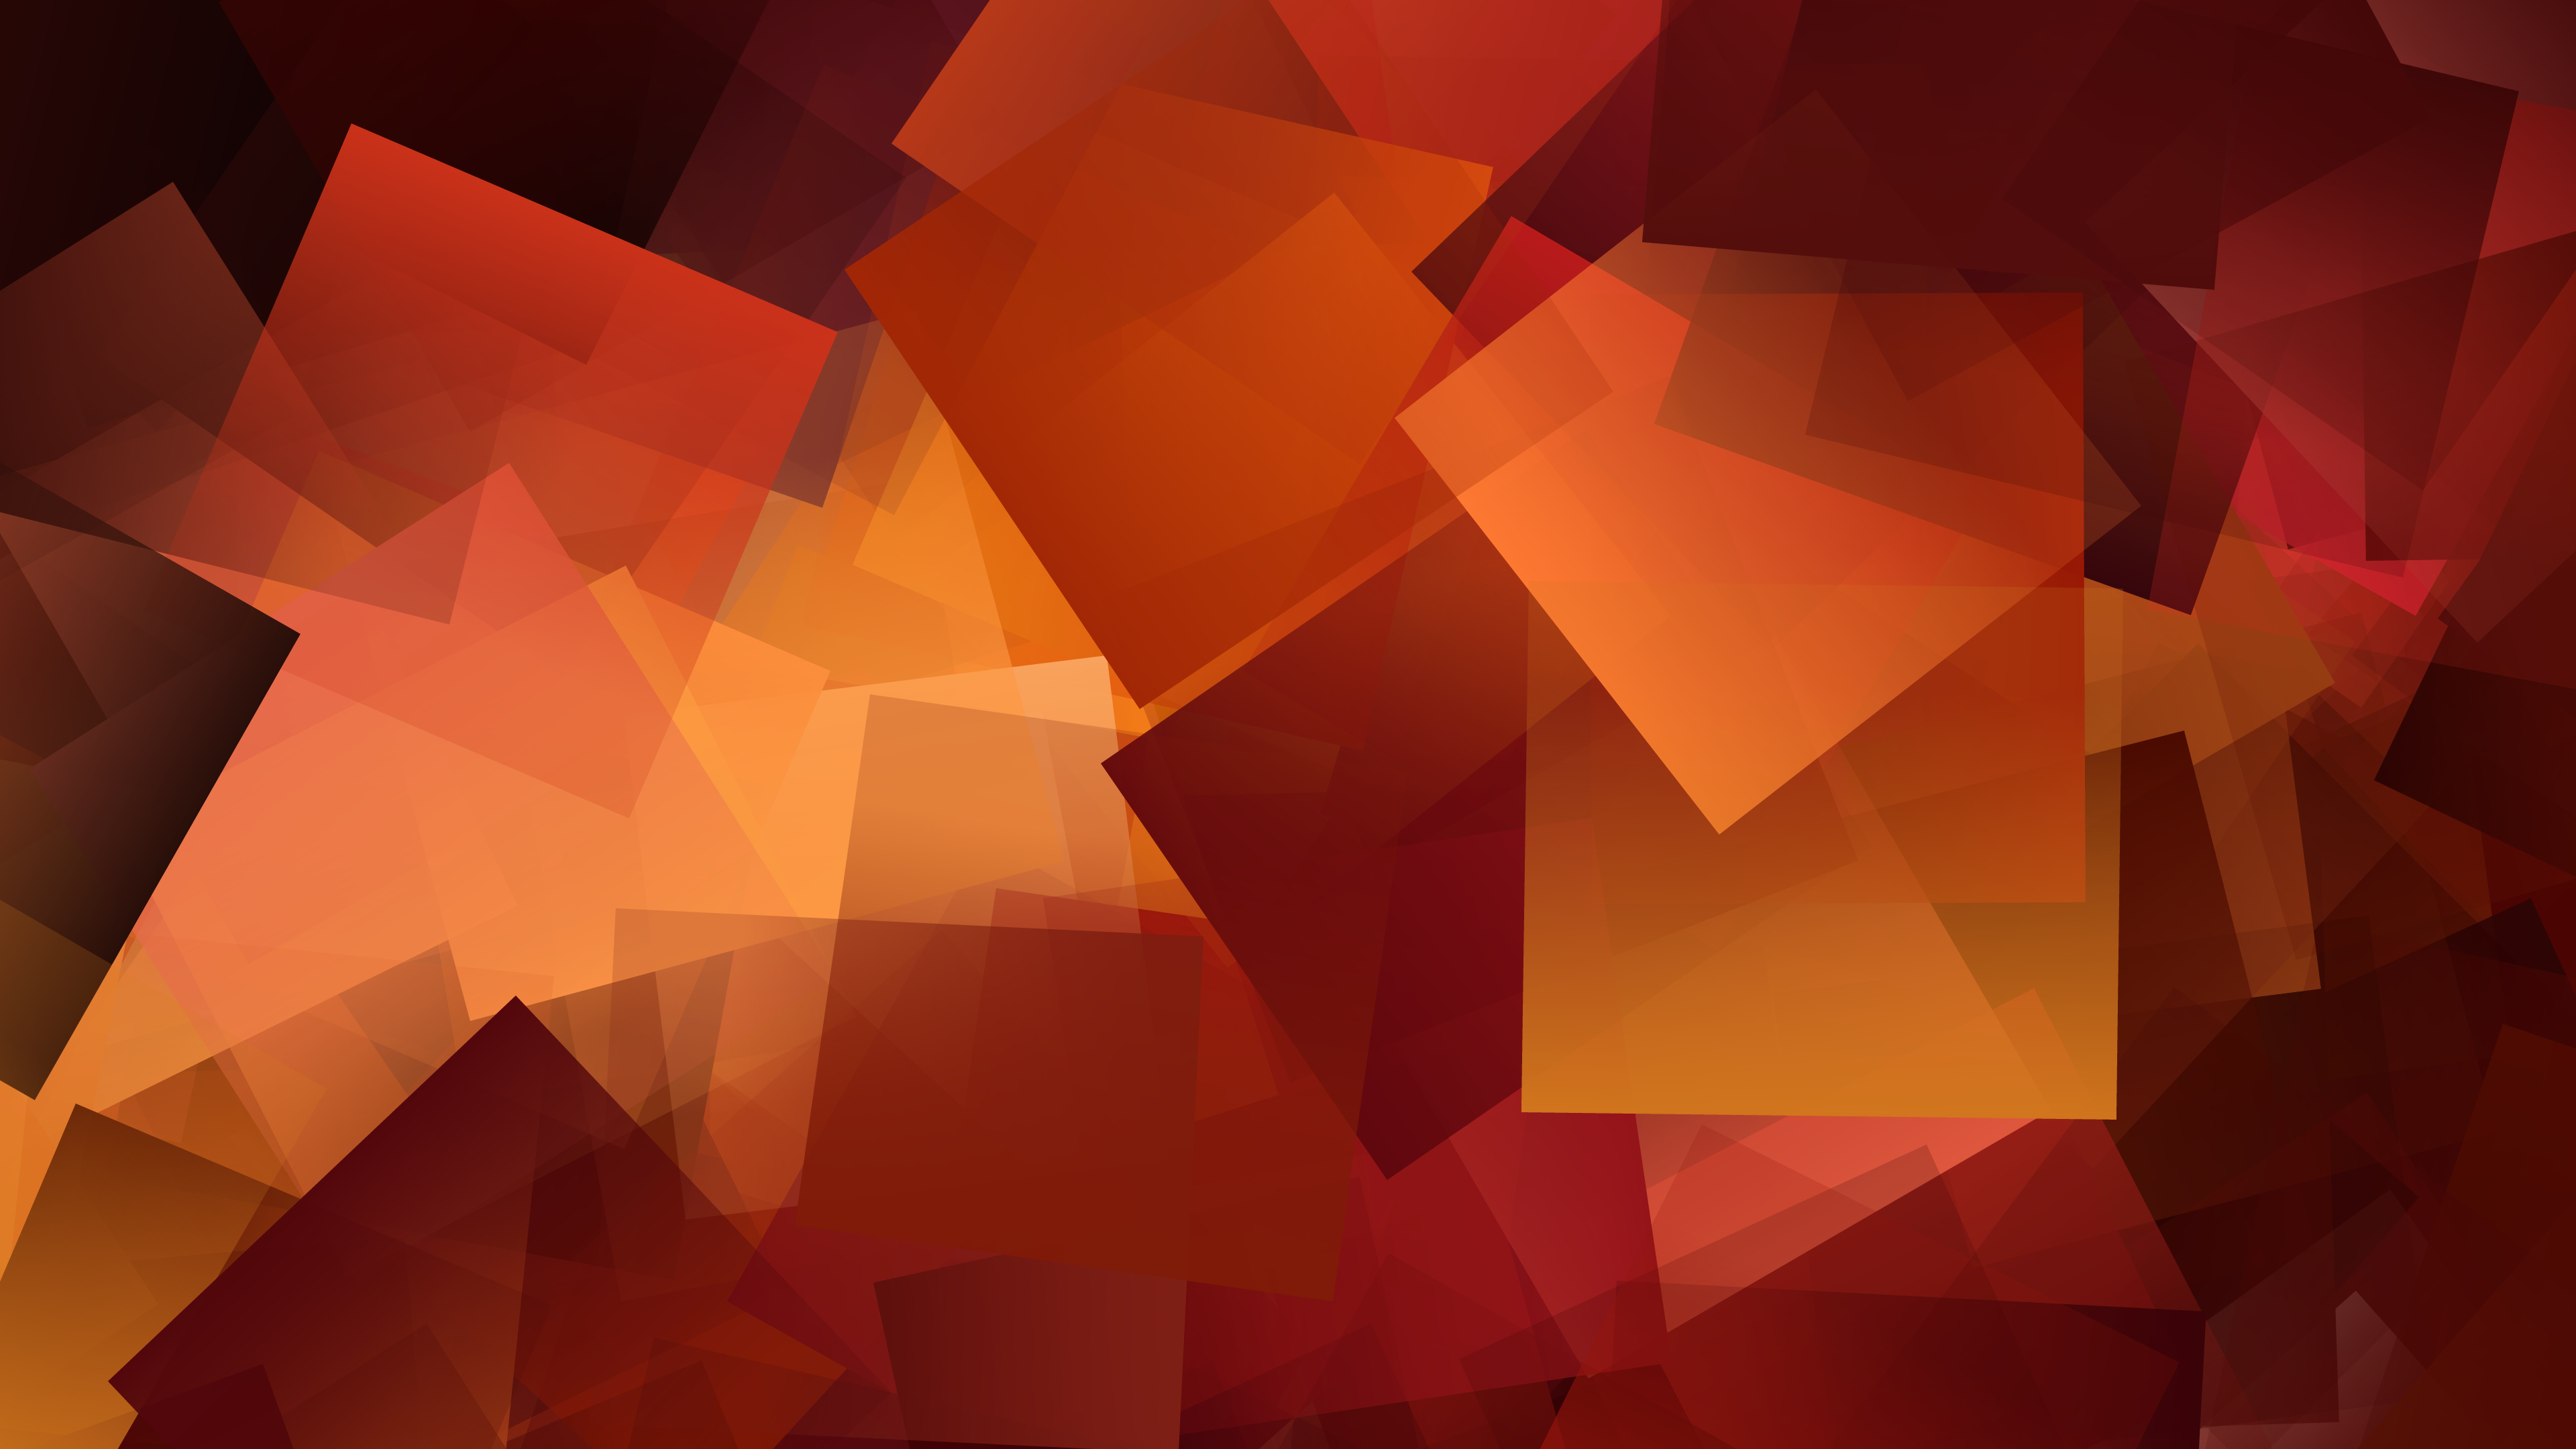 geometry shapes abstract 4k 1539370997 - Geometry Shapes Abstract 4k - shapes wallpapers, hd-wallpapers, gradient wallpapers, geometry wallpapers, cube wallpapers, abstract wallpapers, 4k-wallpapers